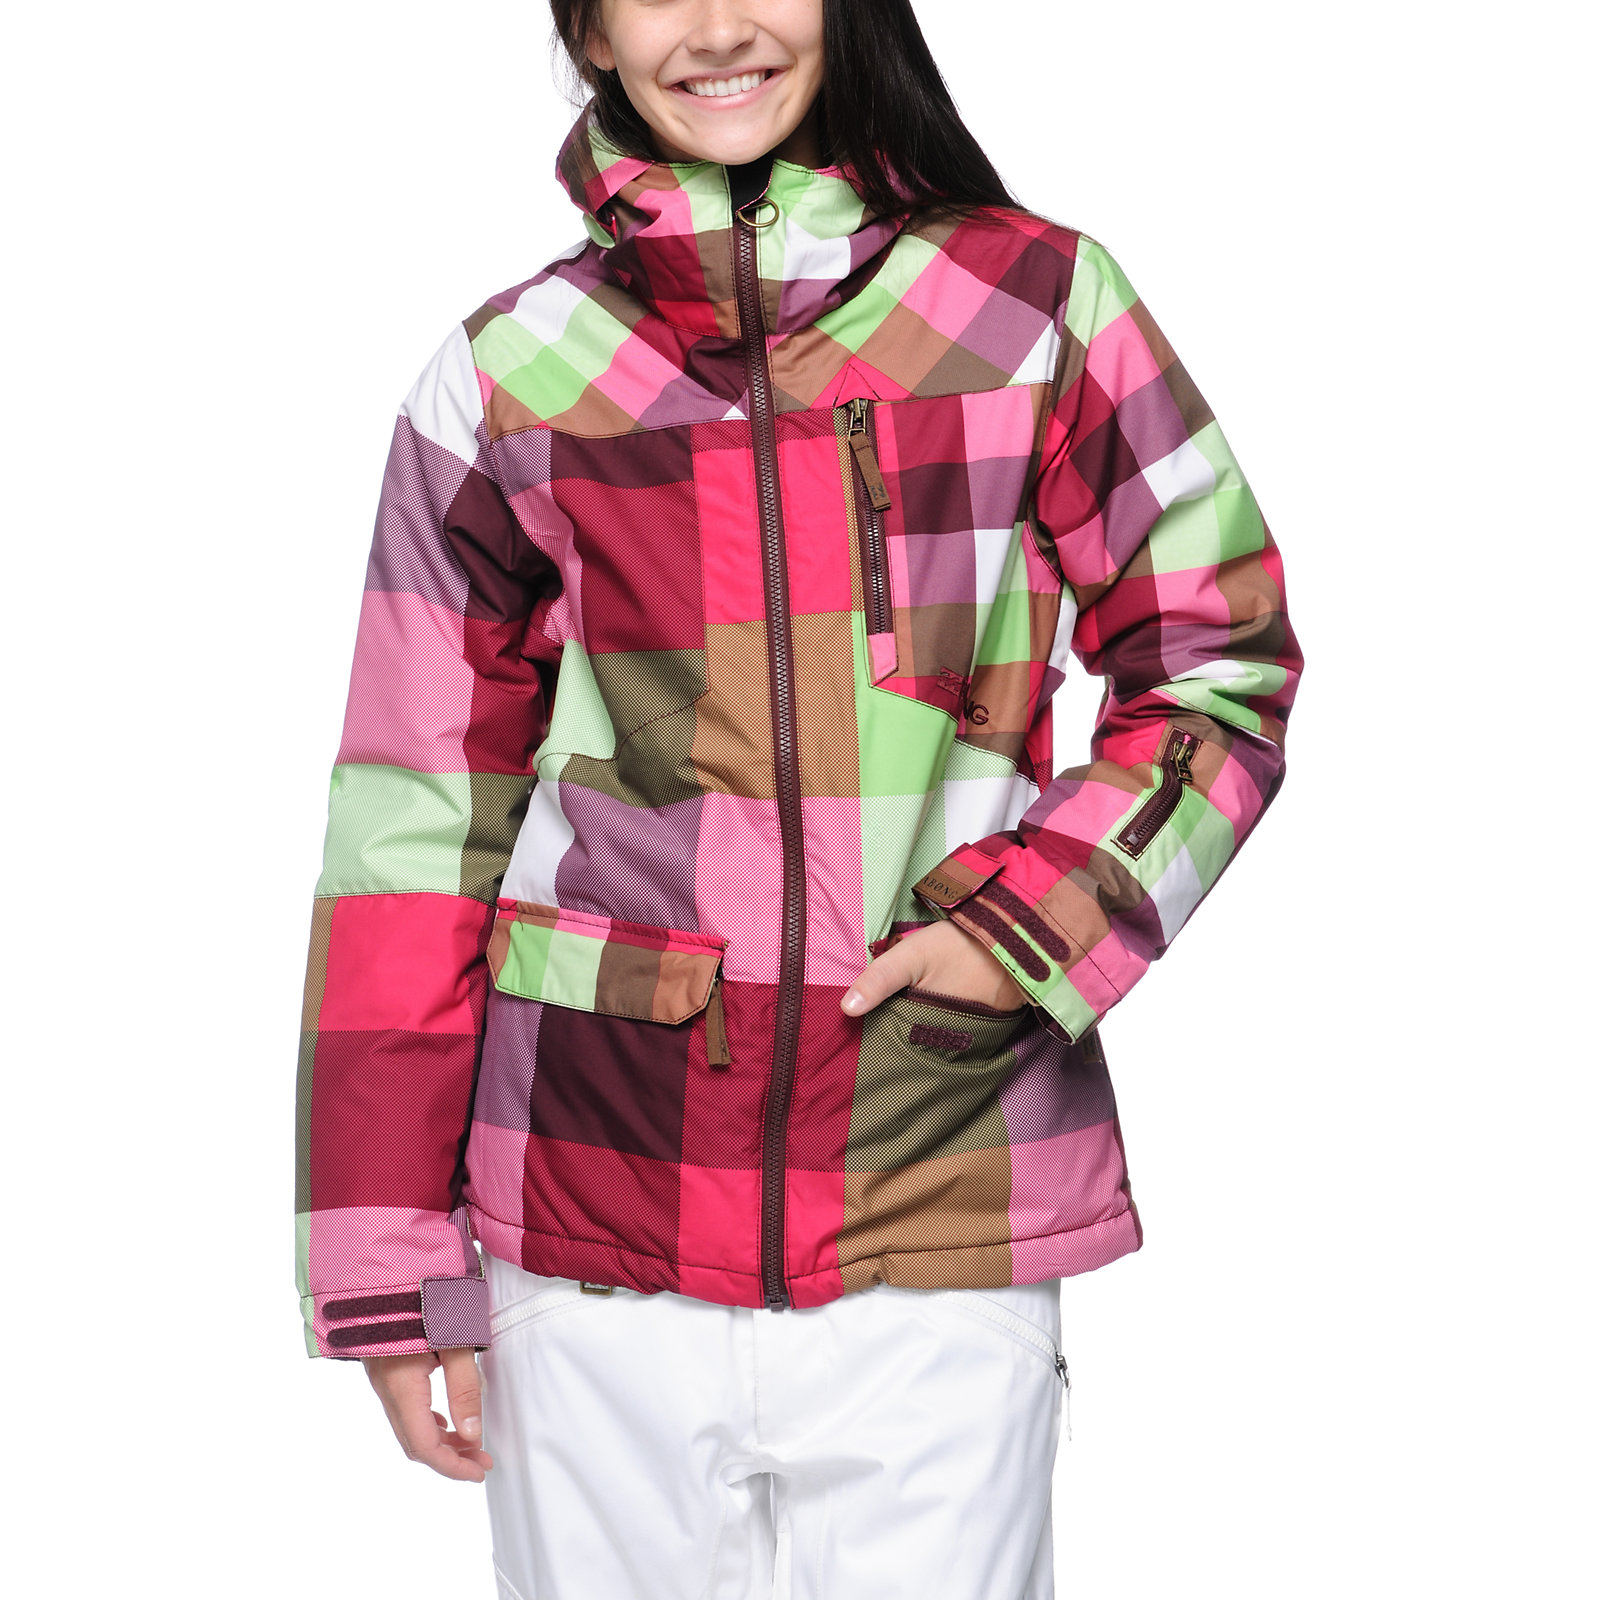 Snowboard Billabong Check Your Booty 10K Girls 2013 Snowboard Jacket